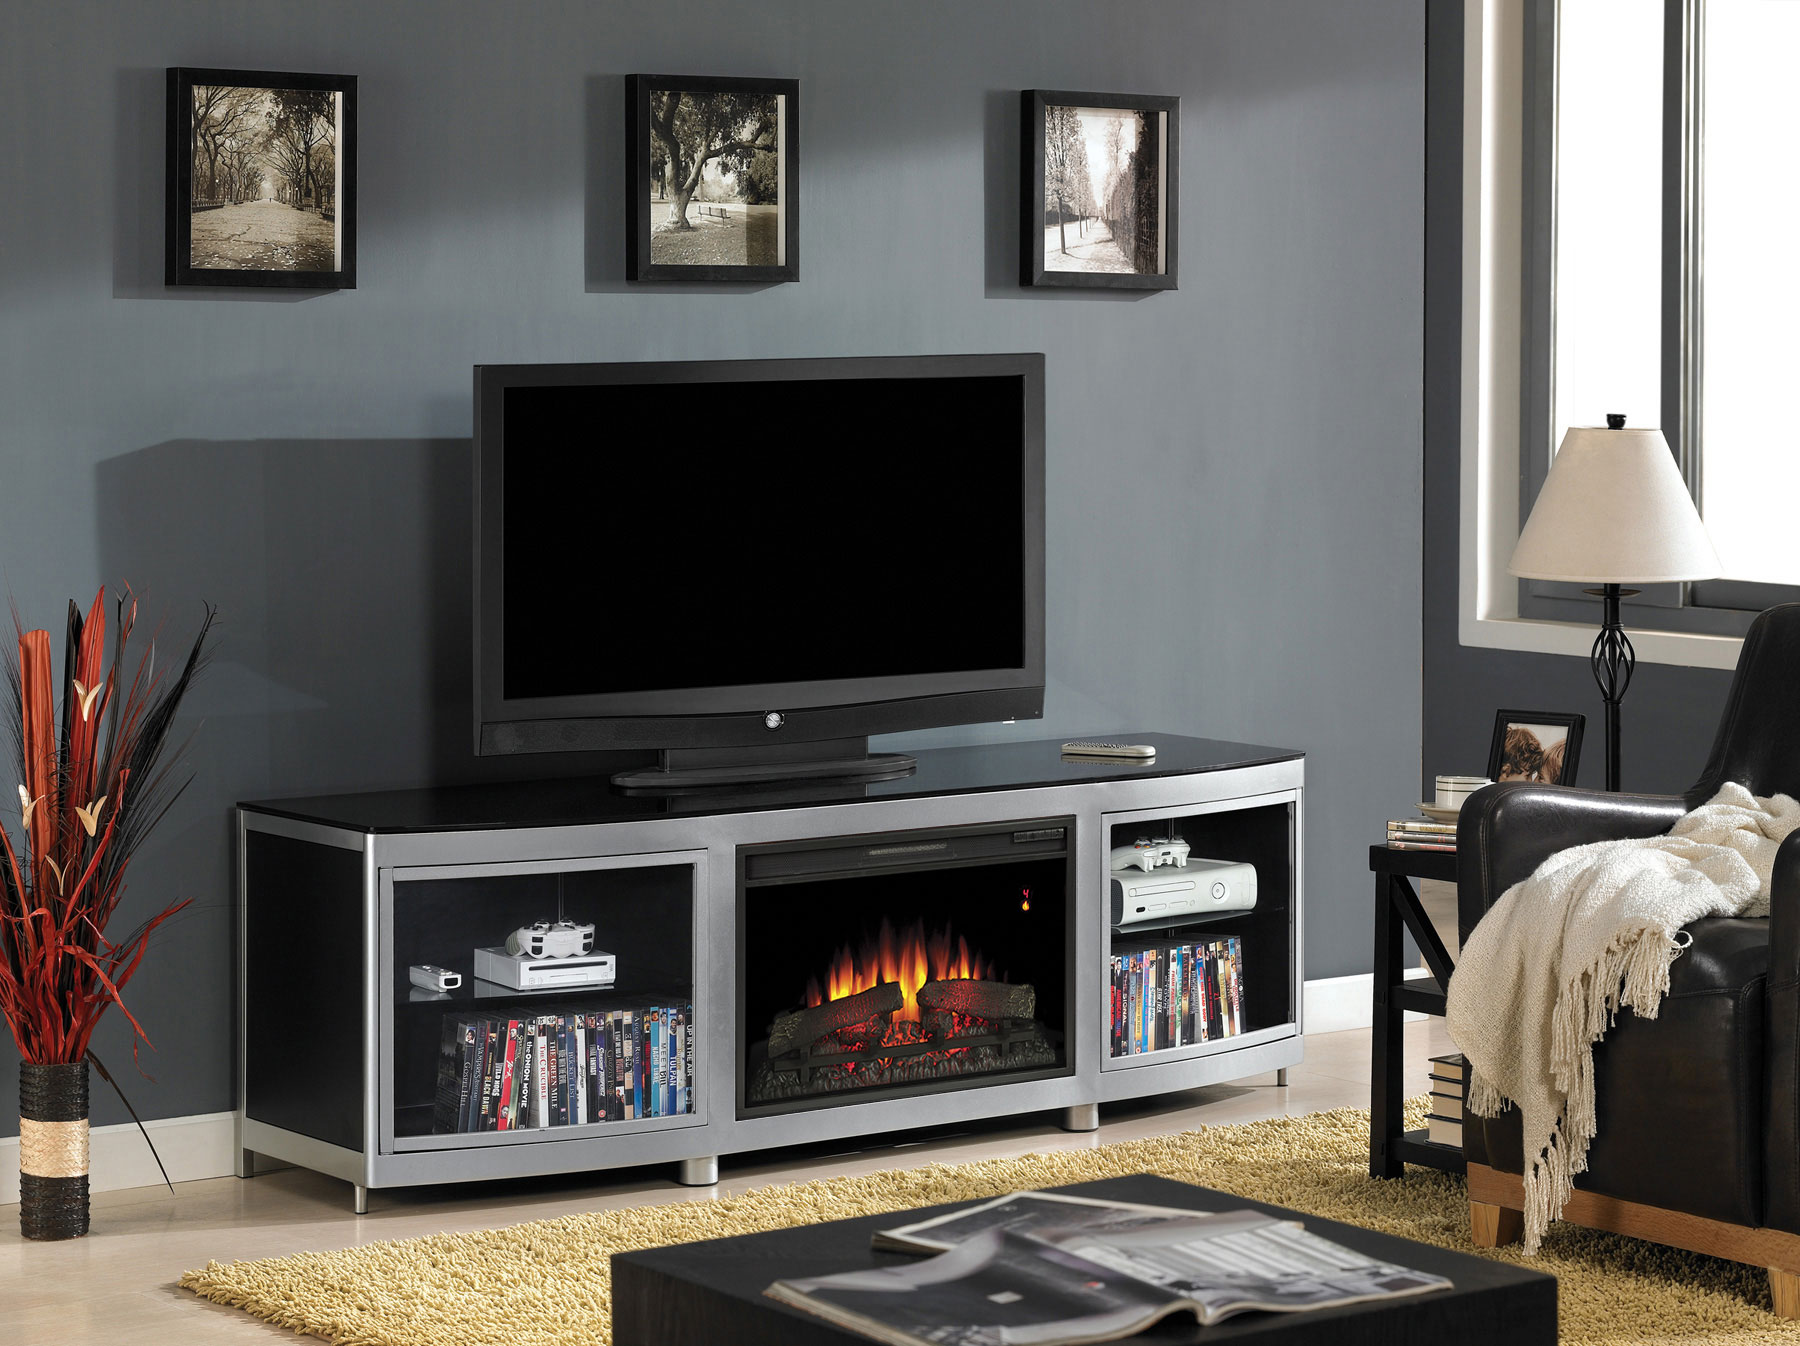 electric stands latest uncategorized with trends fireplace white fireplaces exquisite stand size amazing full depot of in the stylish within home tv